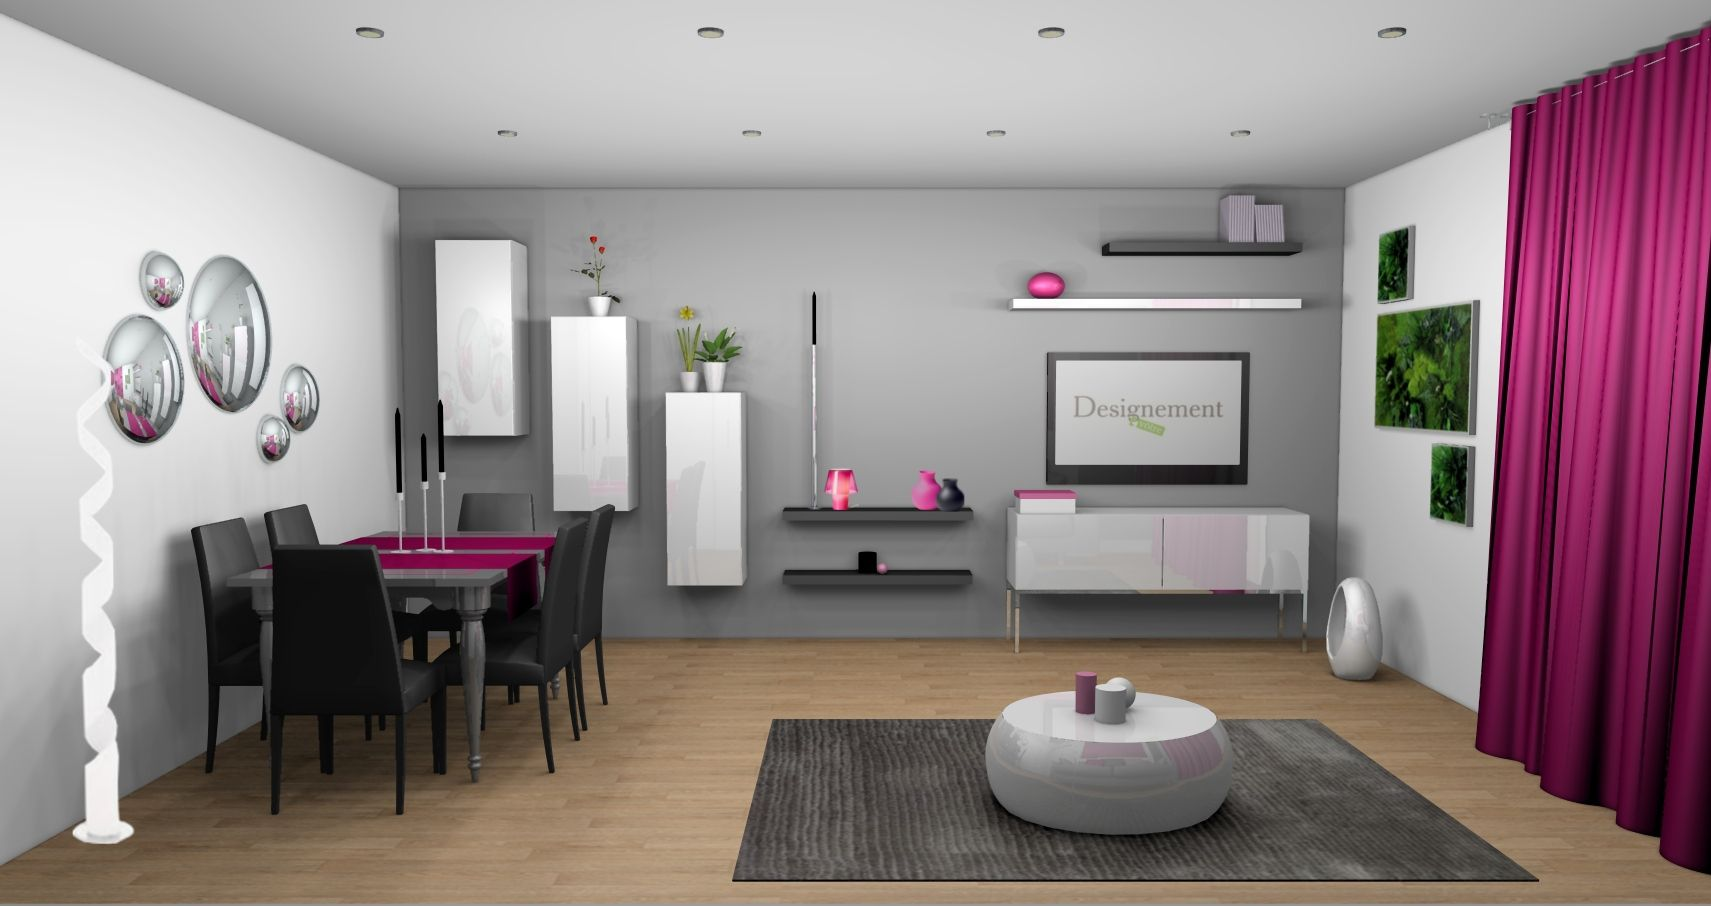 D co salon m r gris et blanc touche de couleur fushia living room pinterest salons for Cuisine gris et blanc deco